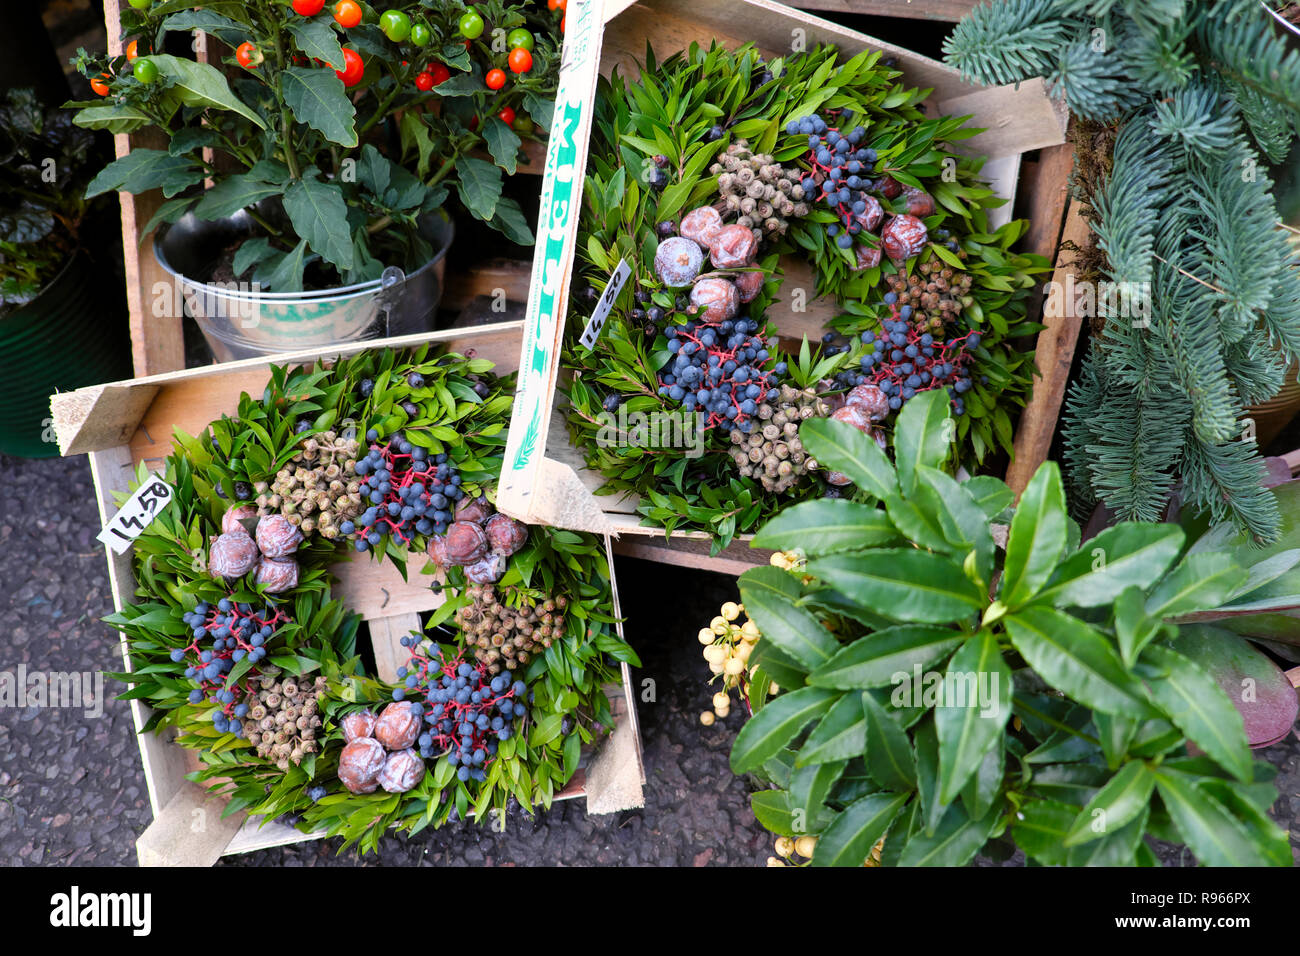 Christmas wreaths with blue berries on plant with red stems and nuts for sale on a garden stall at Borough Market in London England UK  KATHY DEWITT Stock Photo